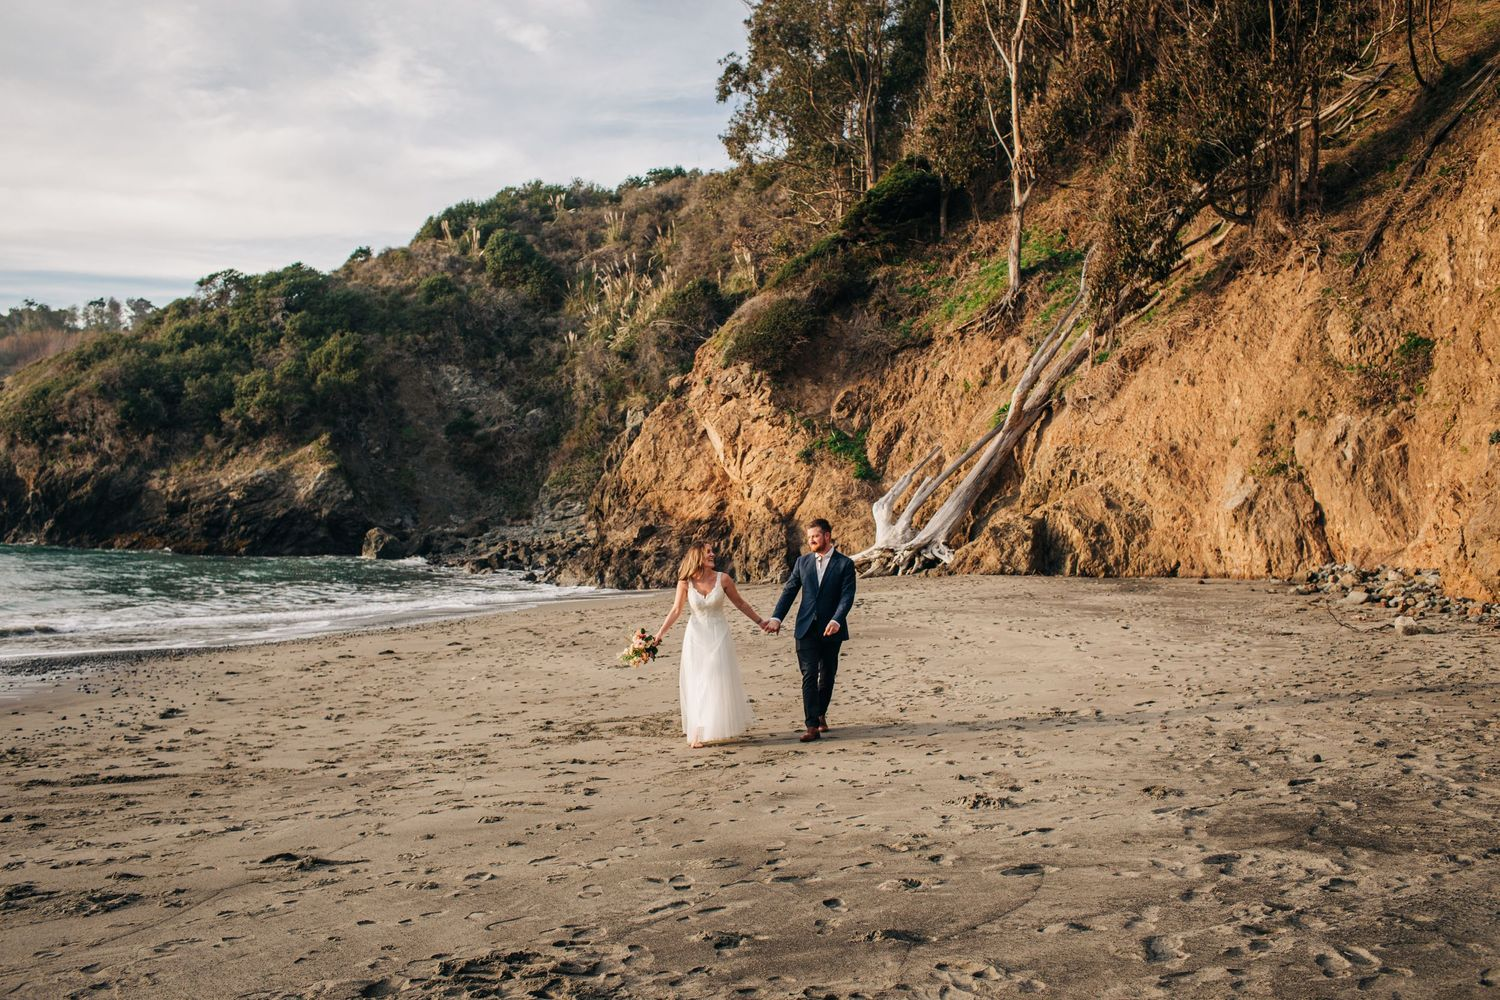 Such a happy day for an elopement in Northern California.